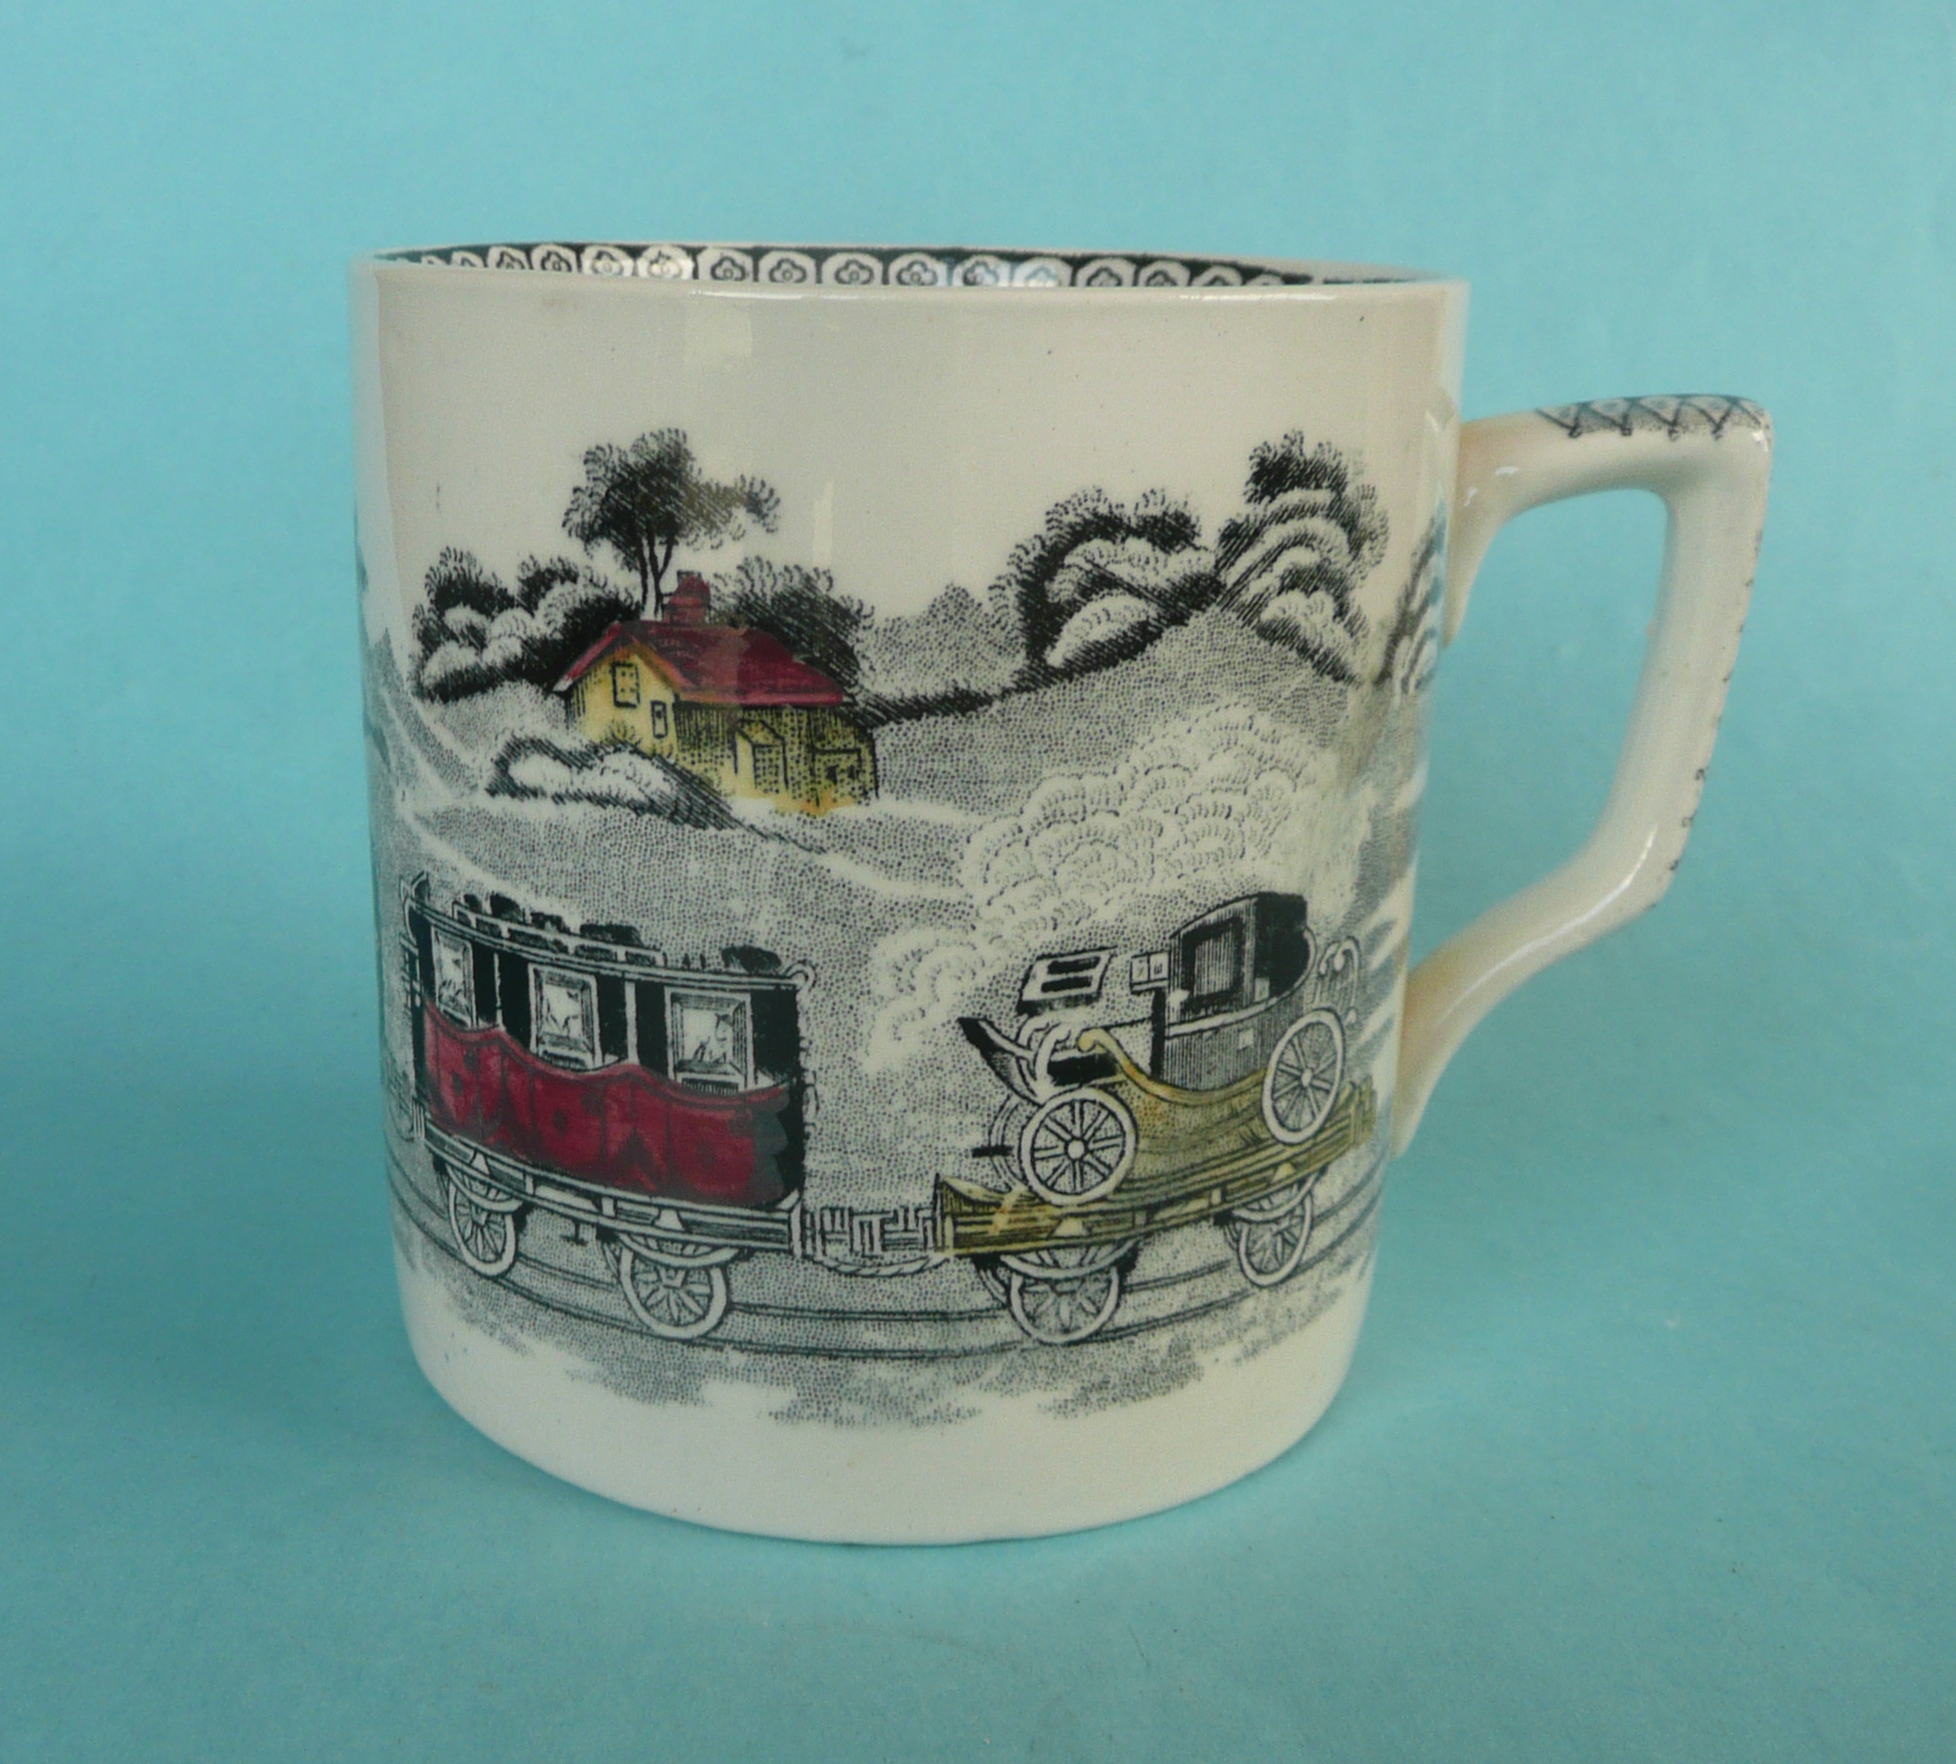 Lot 21 - Railways: a 19th century cylindrical pottery mug printed in black and decorated in yellow and red